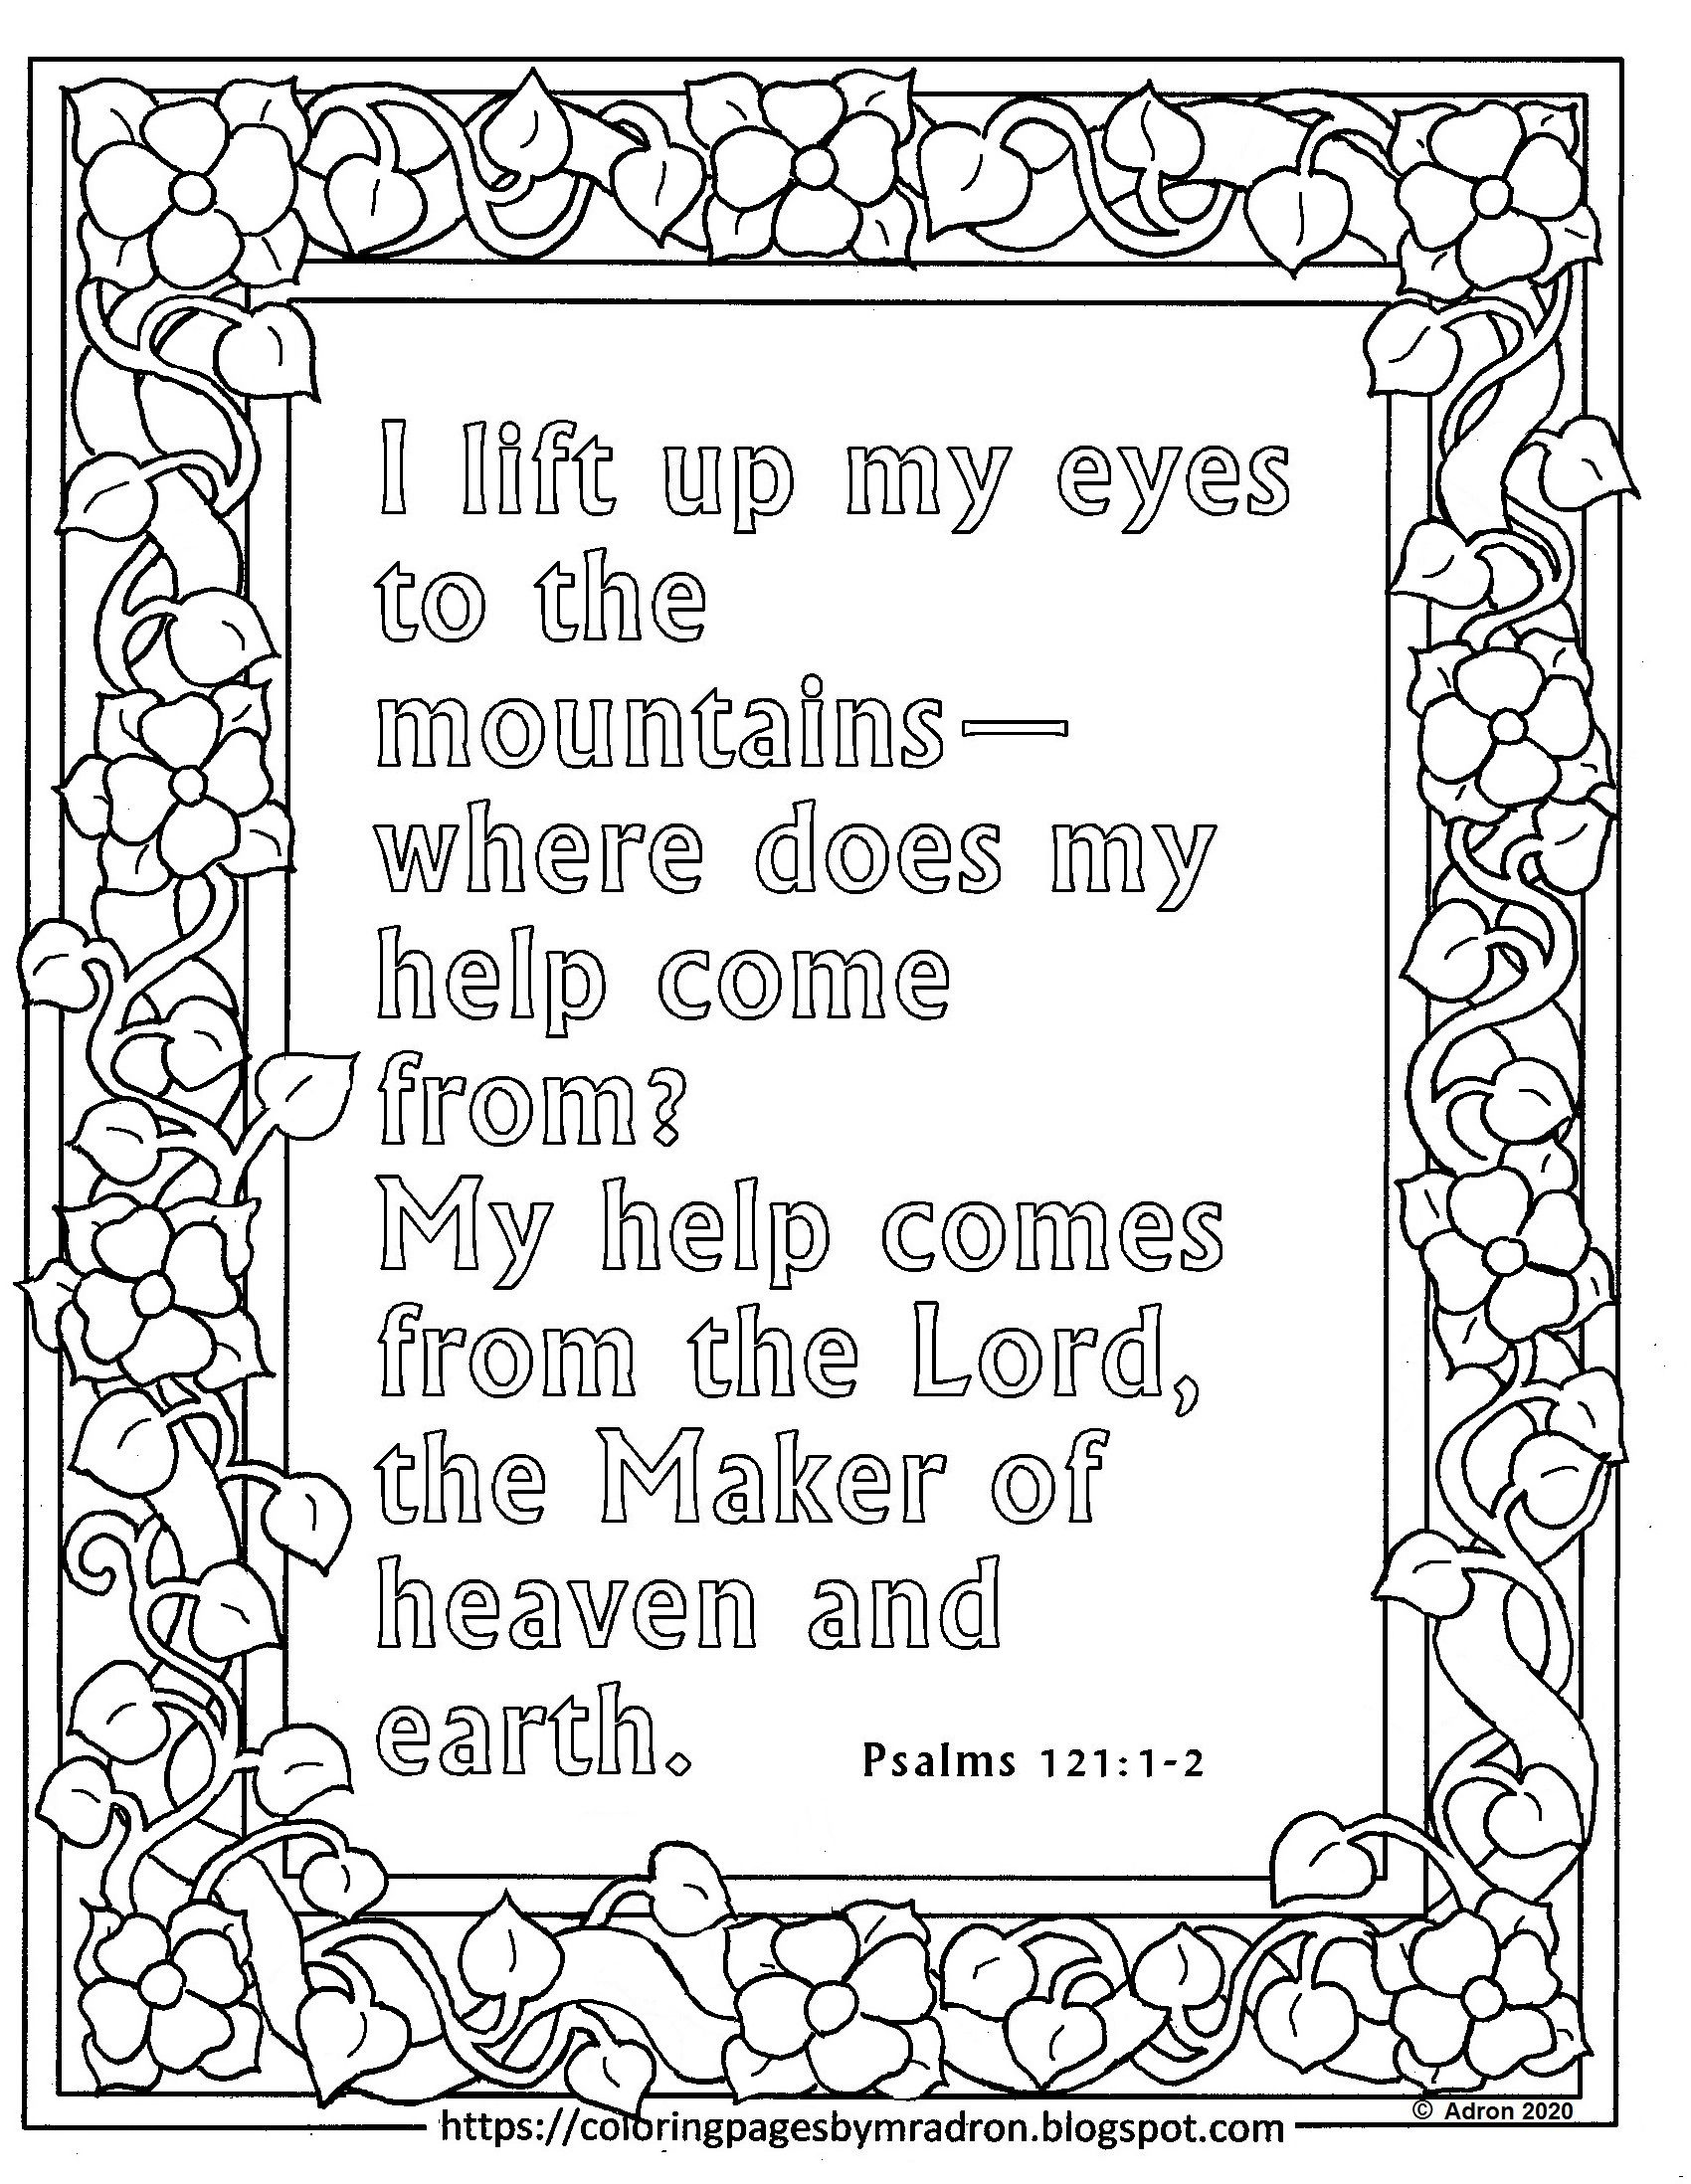 Free Print and Color Psalm 200:200-20 Page  Free printable coloring